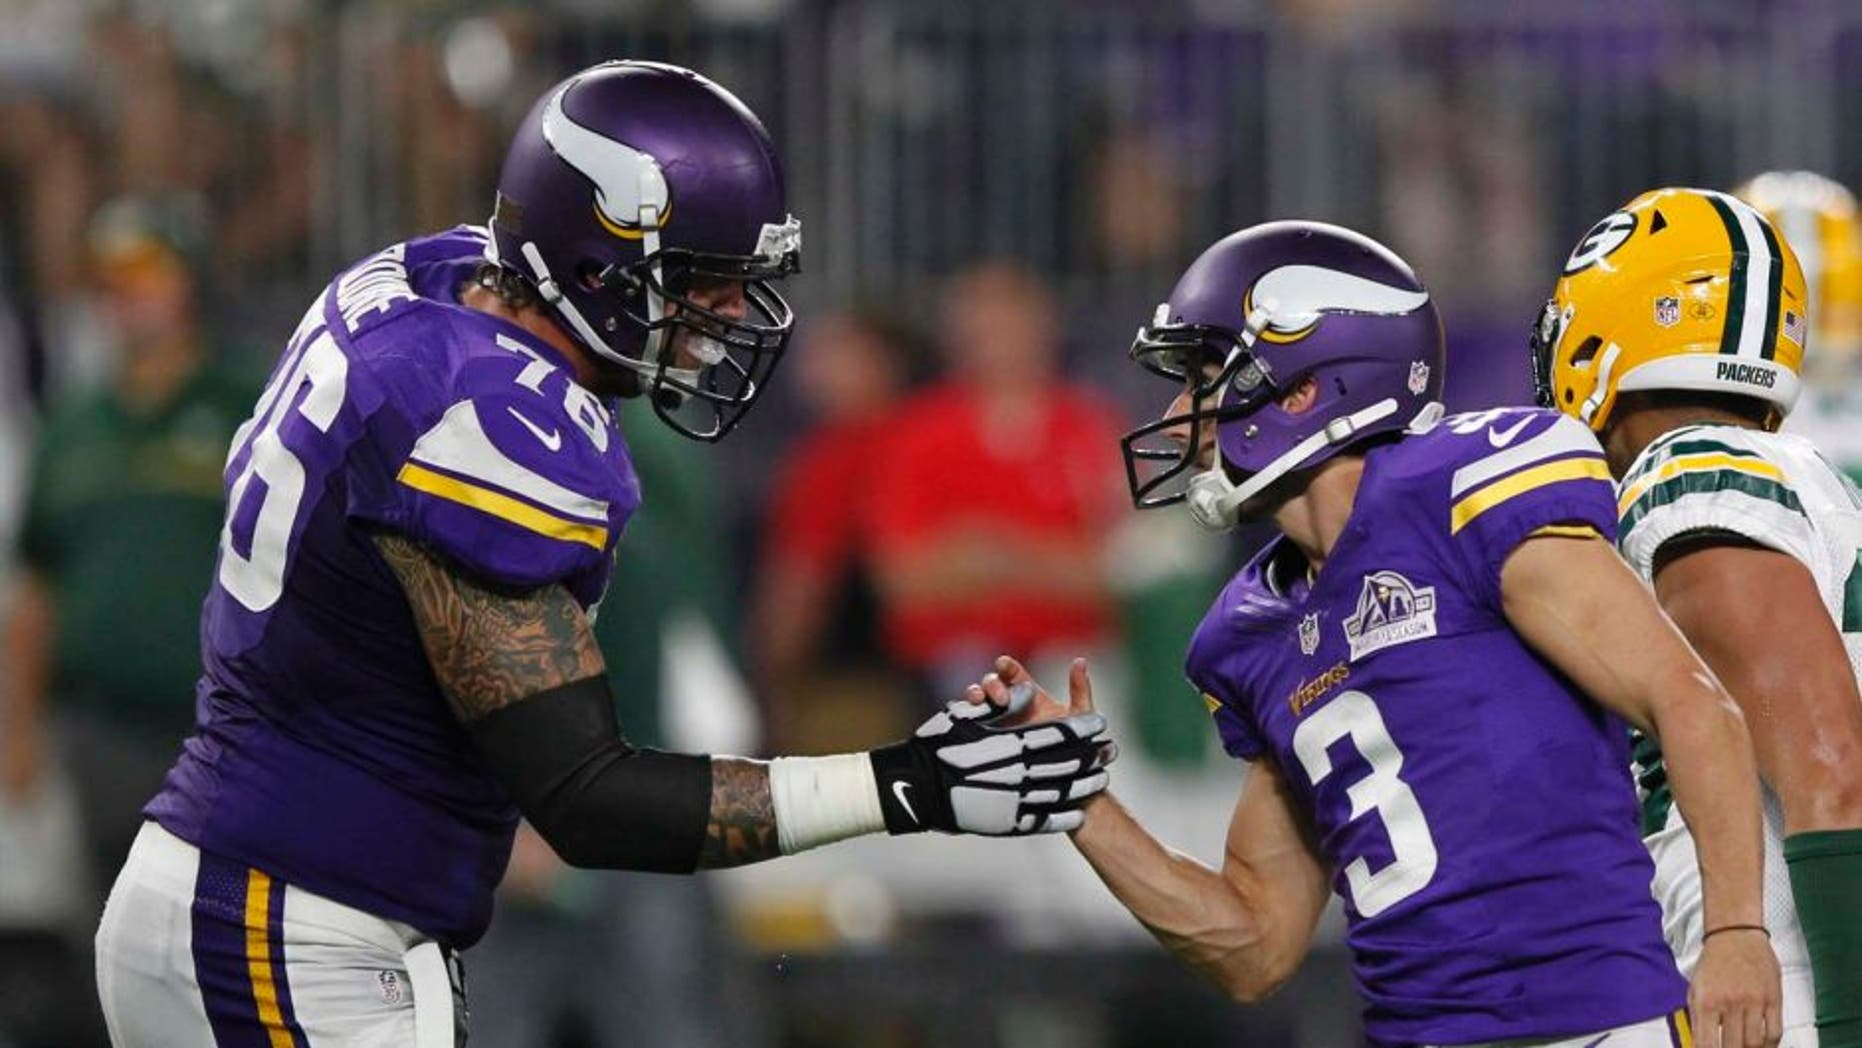 Minnesota Vikings kicker Blair Walsh (right) celebrates with teammate Alex Boone after kicking a 46-yard field goal during the first half against the Green Bay Packers on Sunday, Sept. 18, 2016, in Minneapolis.